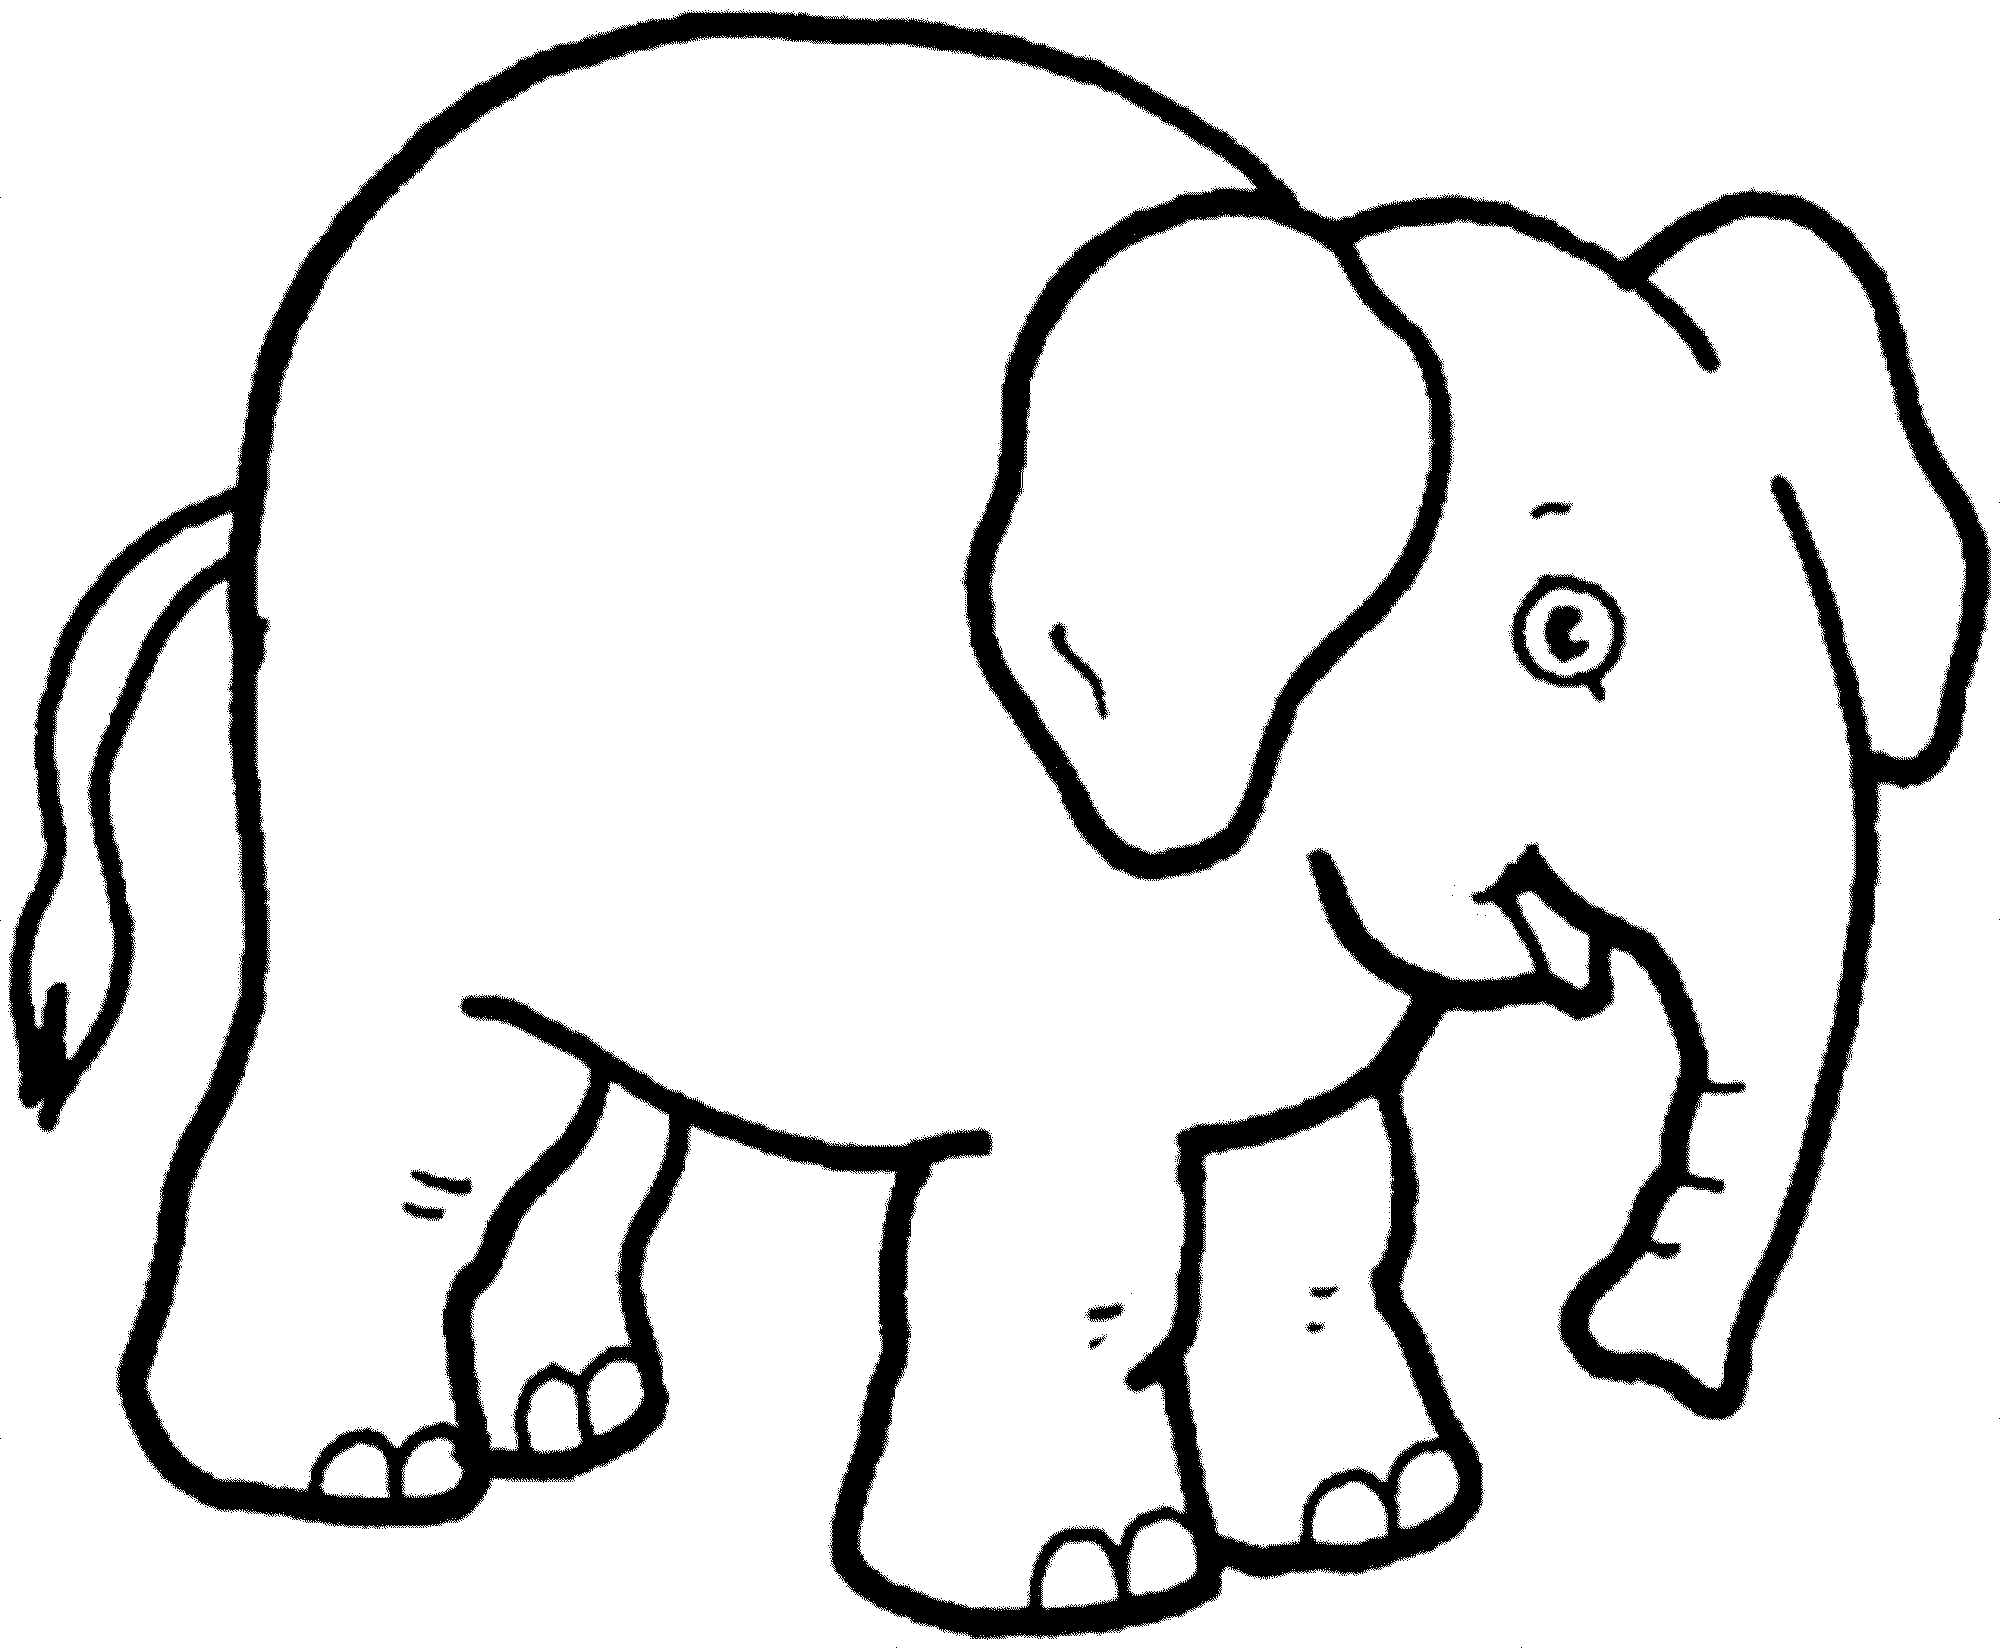 coloring book elephant images elephants to color for children elephants kids coloring book elephant coloring images